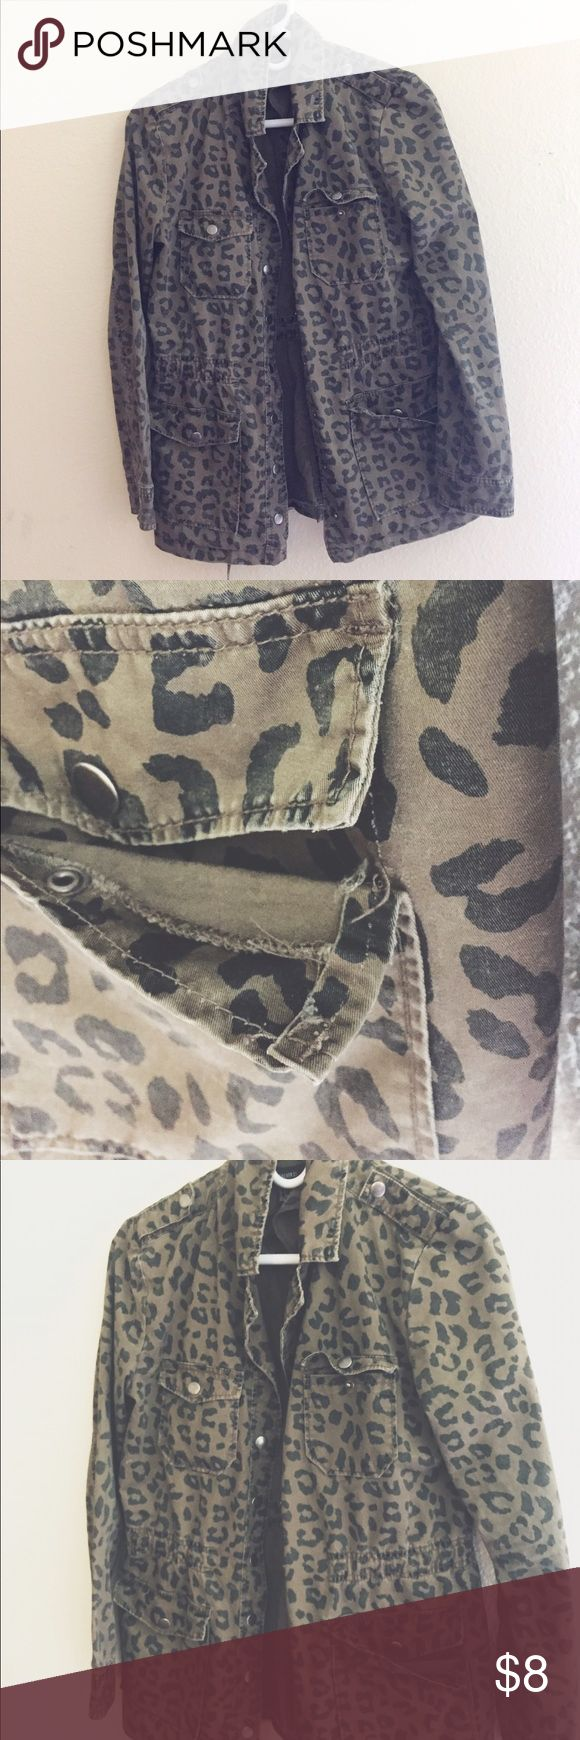 Leopard print olive green jacket Super cute. Only damage is the pocket that I took a picture of. Light jacket perfect for fall! Forever 21 Jackets & Coats Utility Jackets